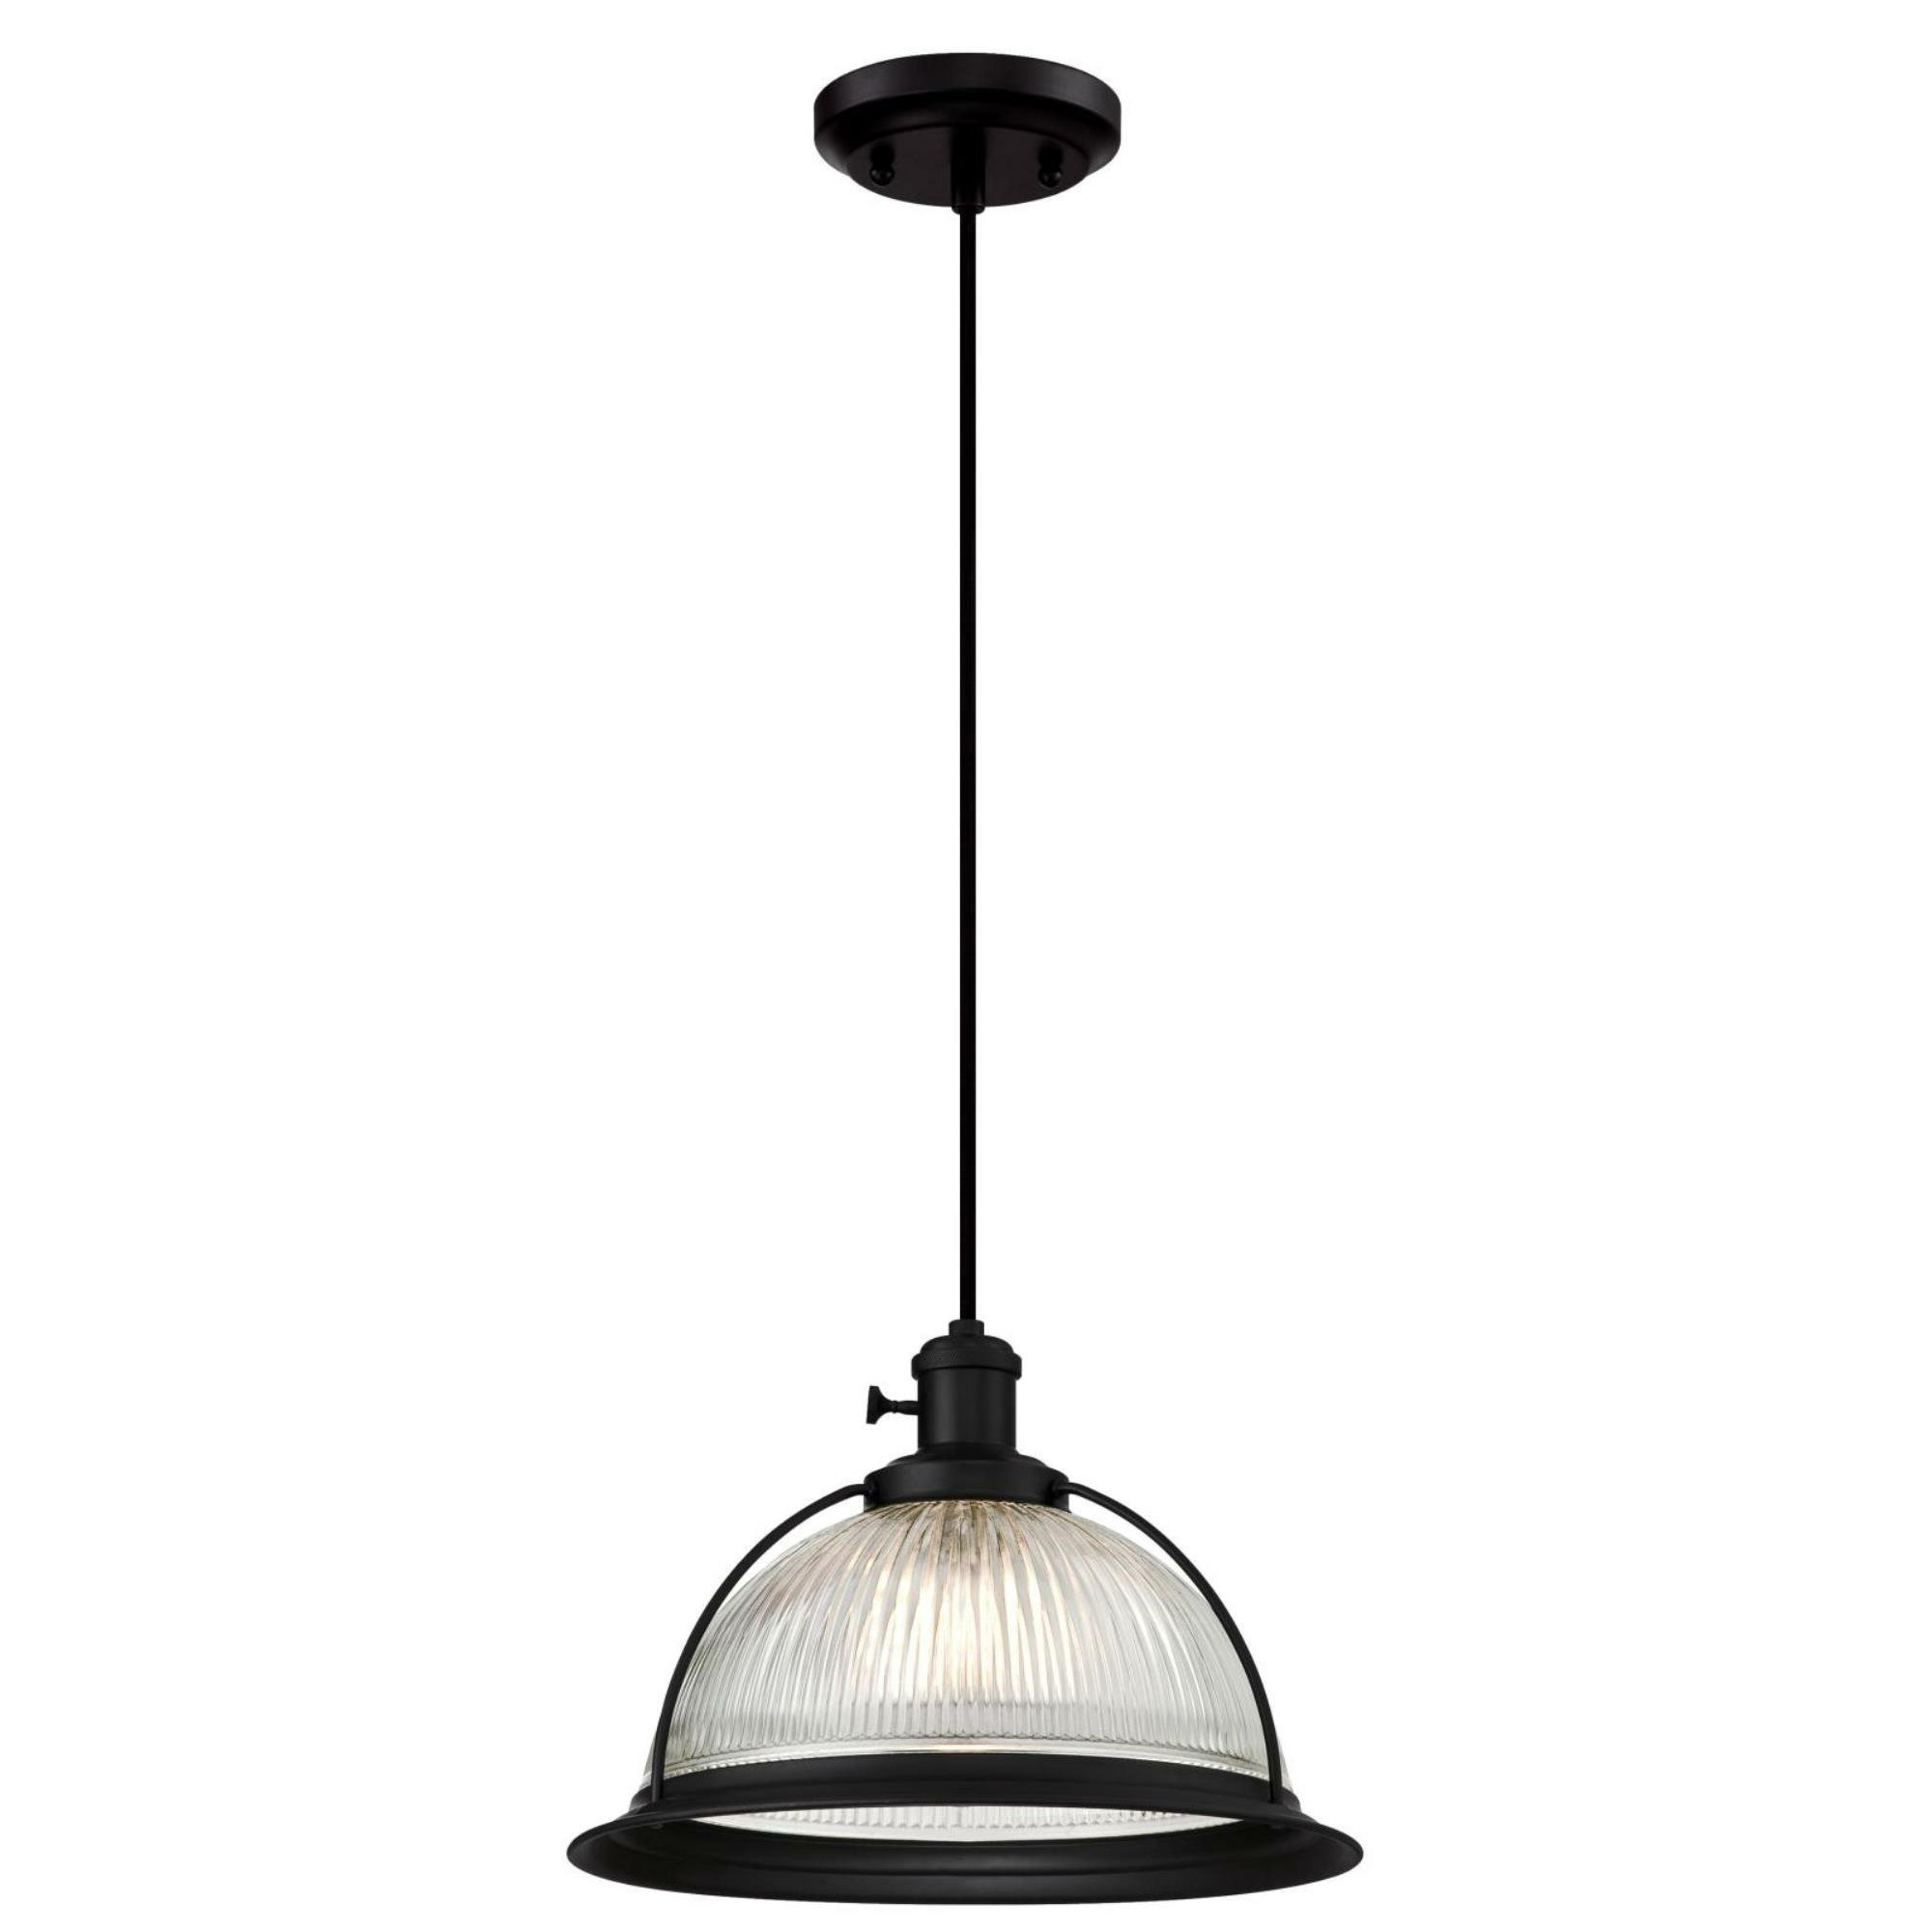 Best And Newest Abernathy 1 Light Dome Pendants Regarding Delway 1 Light Single Dome Pendant (View 5 of 20)